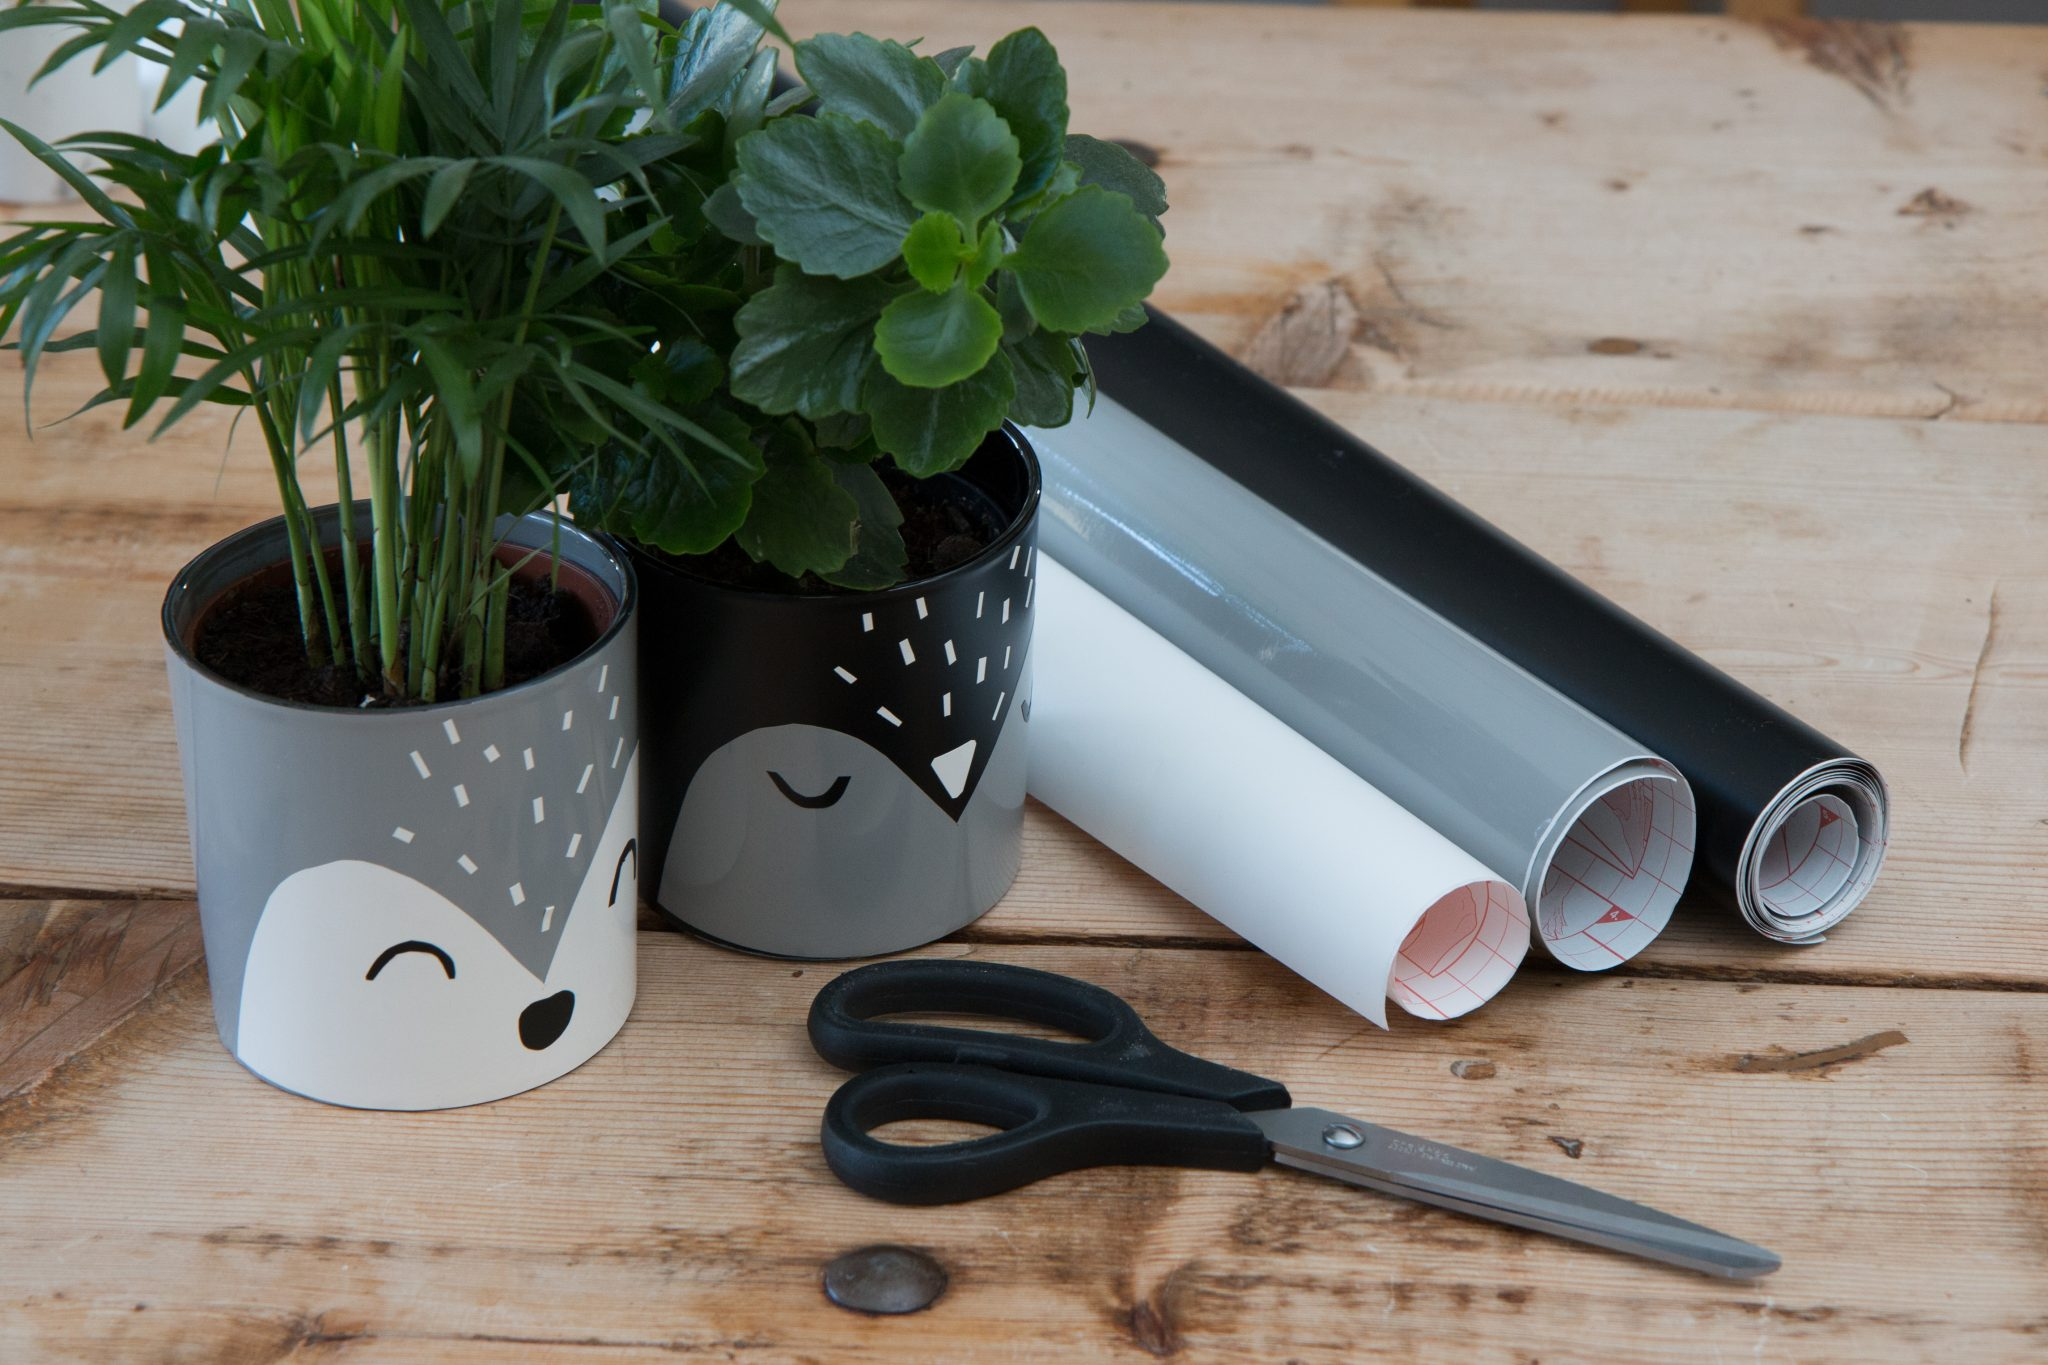 Flowerpots with animal faces from d-c-fix® adhesive foils